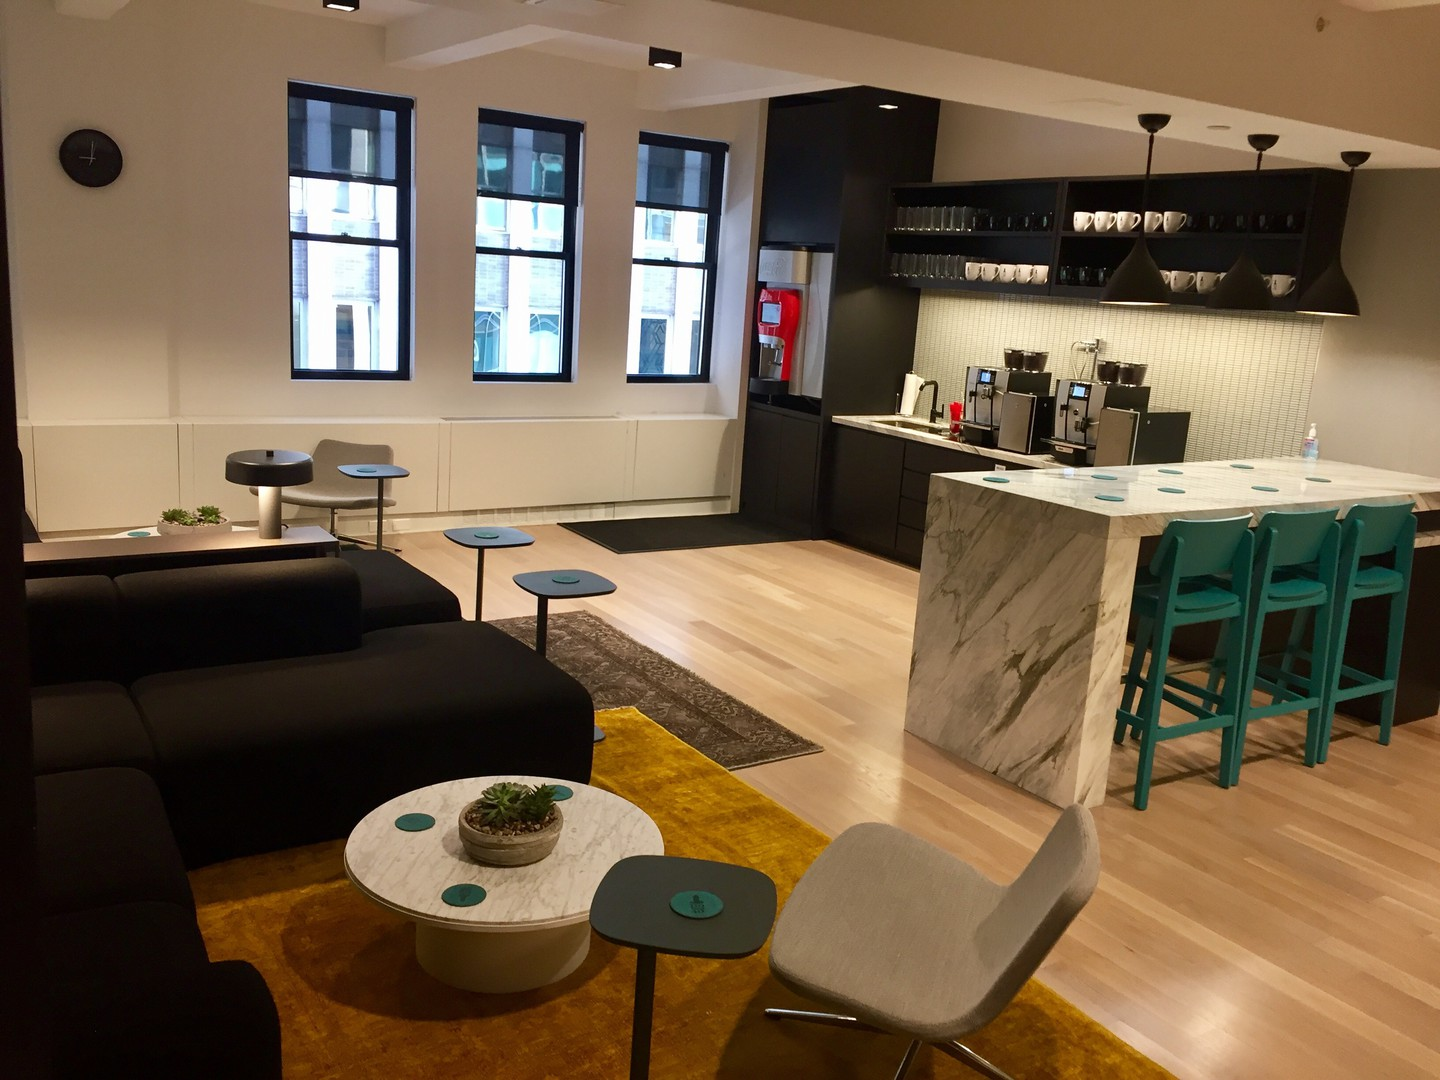 NYC seminar rooms Meetingraum 110west40 Conference Room C image 3